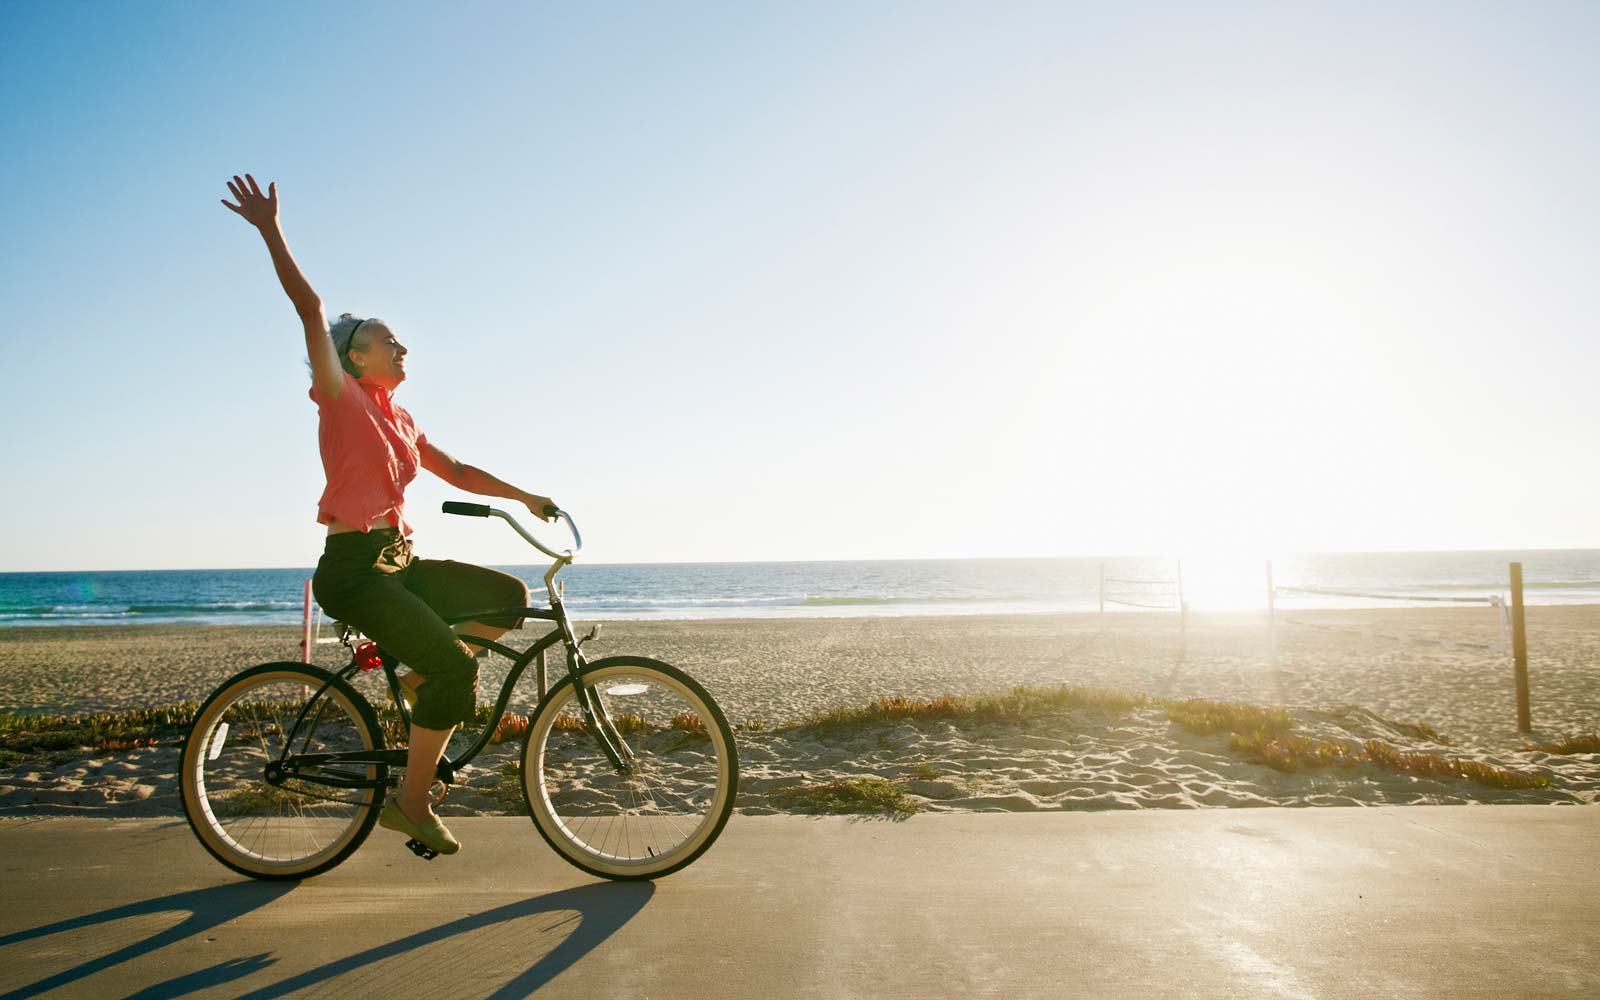 Caucasian woman riding bicycle near beach